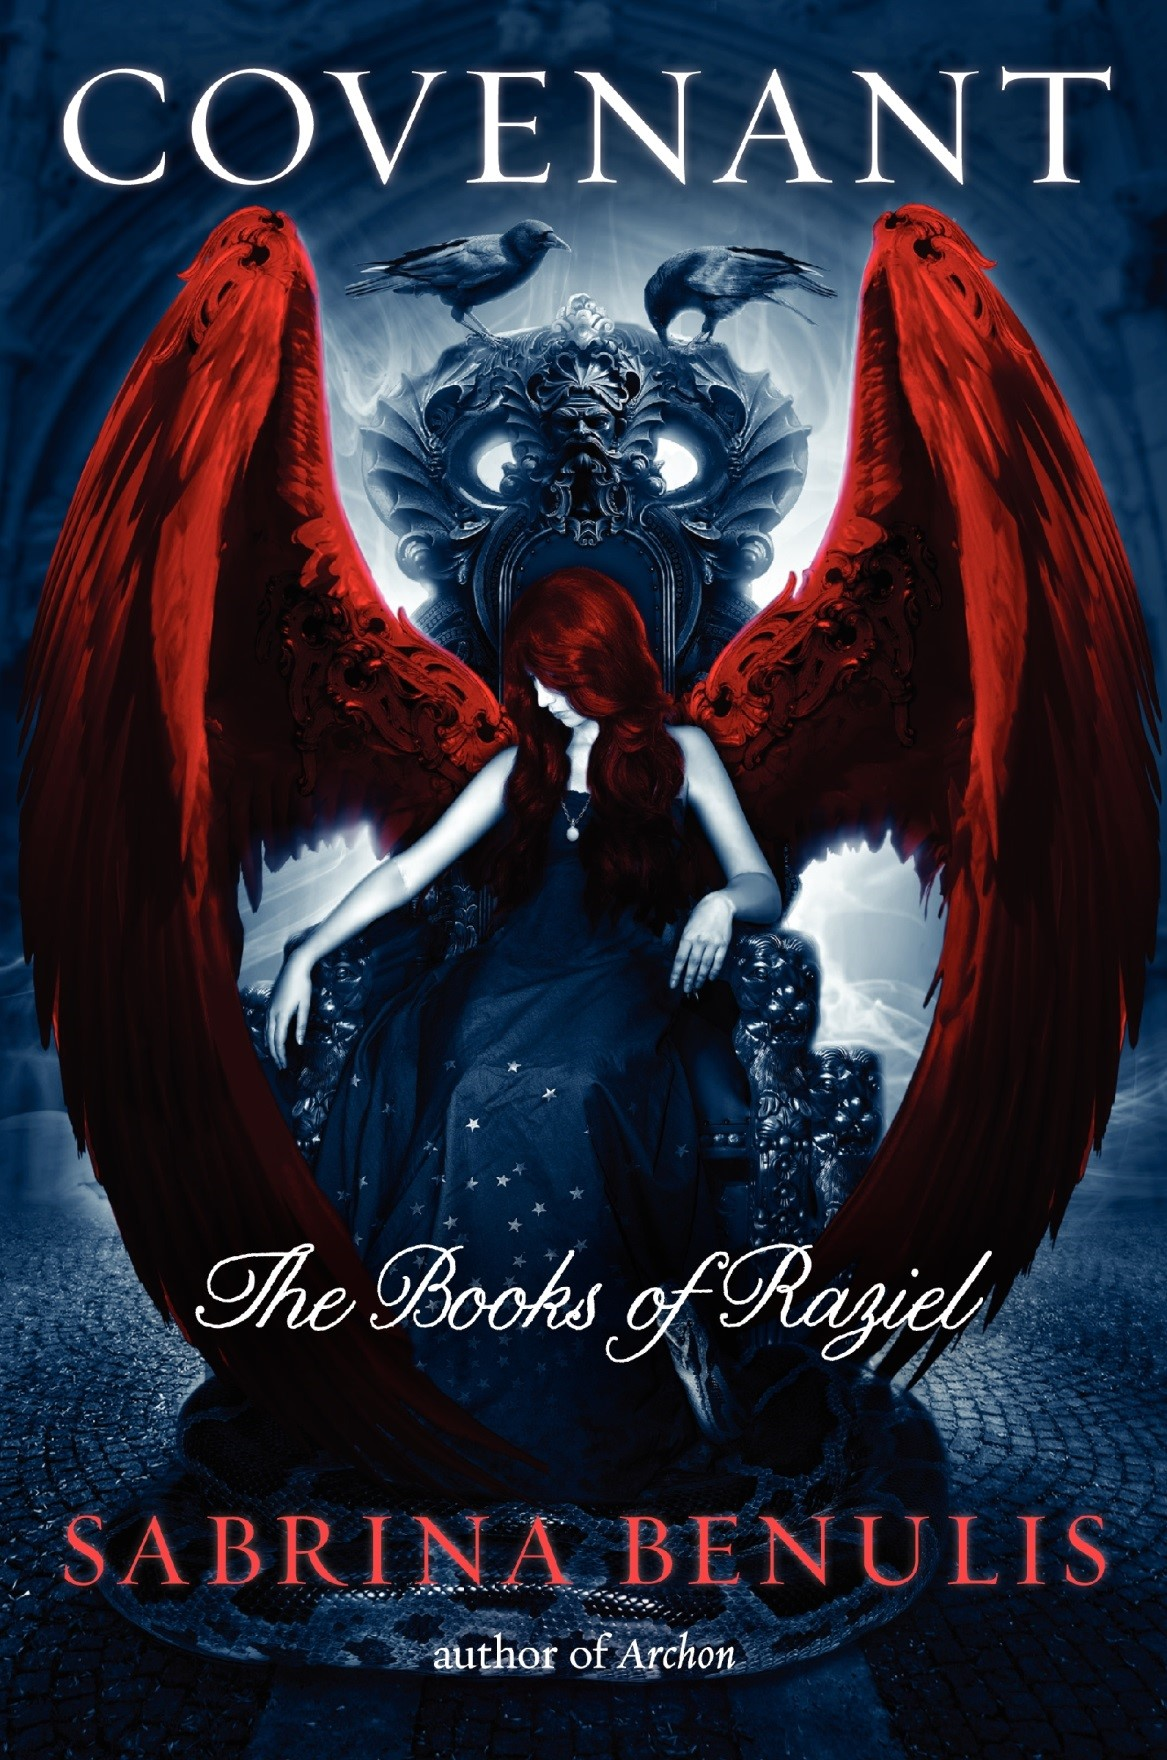 Sabrina Benulis Author Of The Books Of Raziel Series On border=